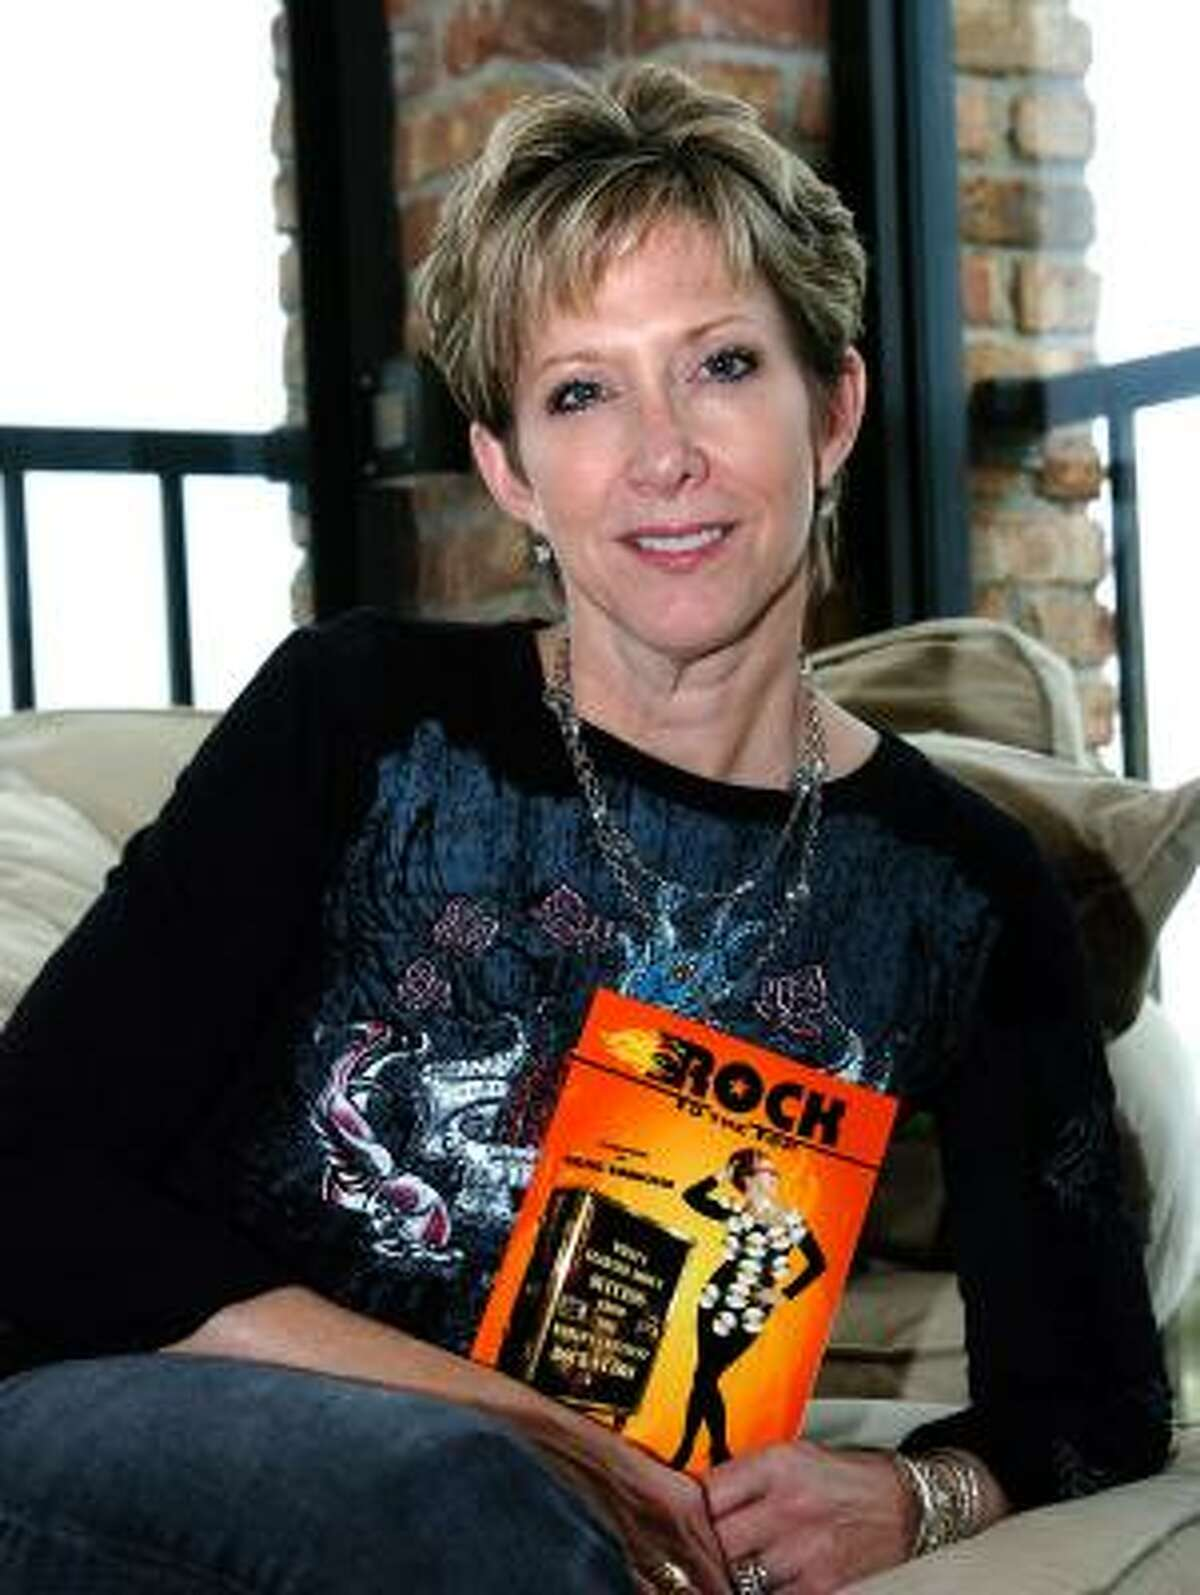 Author and former radio personality Dayna Steele's new book, Rock to the Top: What I Learned About Success From The World's Greatest Rock Stars is part self-help, but mostly fun stories about superstars.